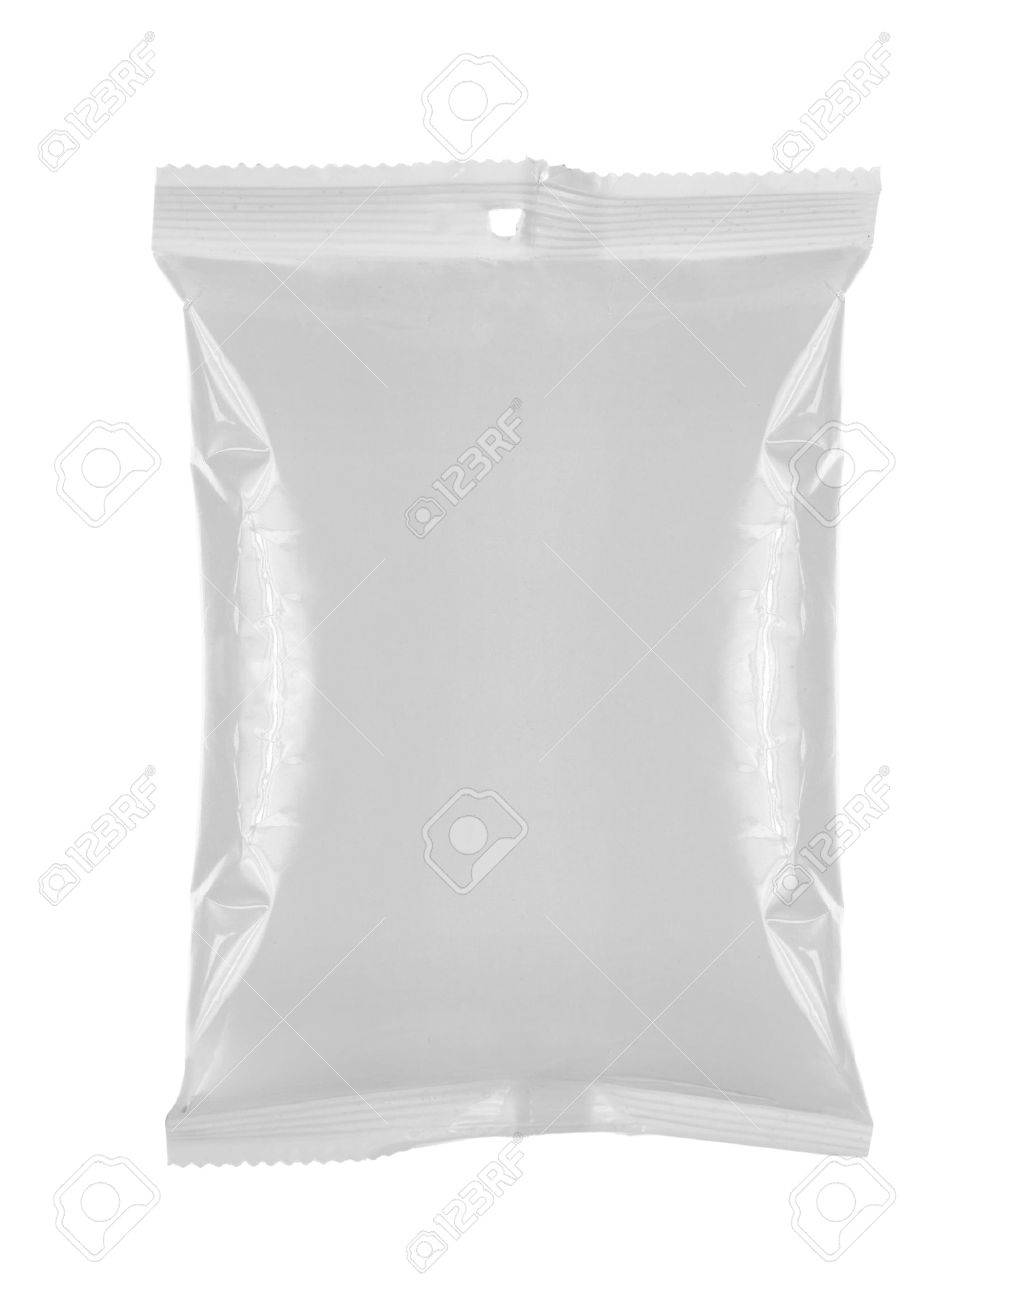 plastic bag snack package. for another blank packaging visit my gallery Standard-Bild - 11154446